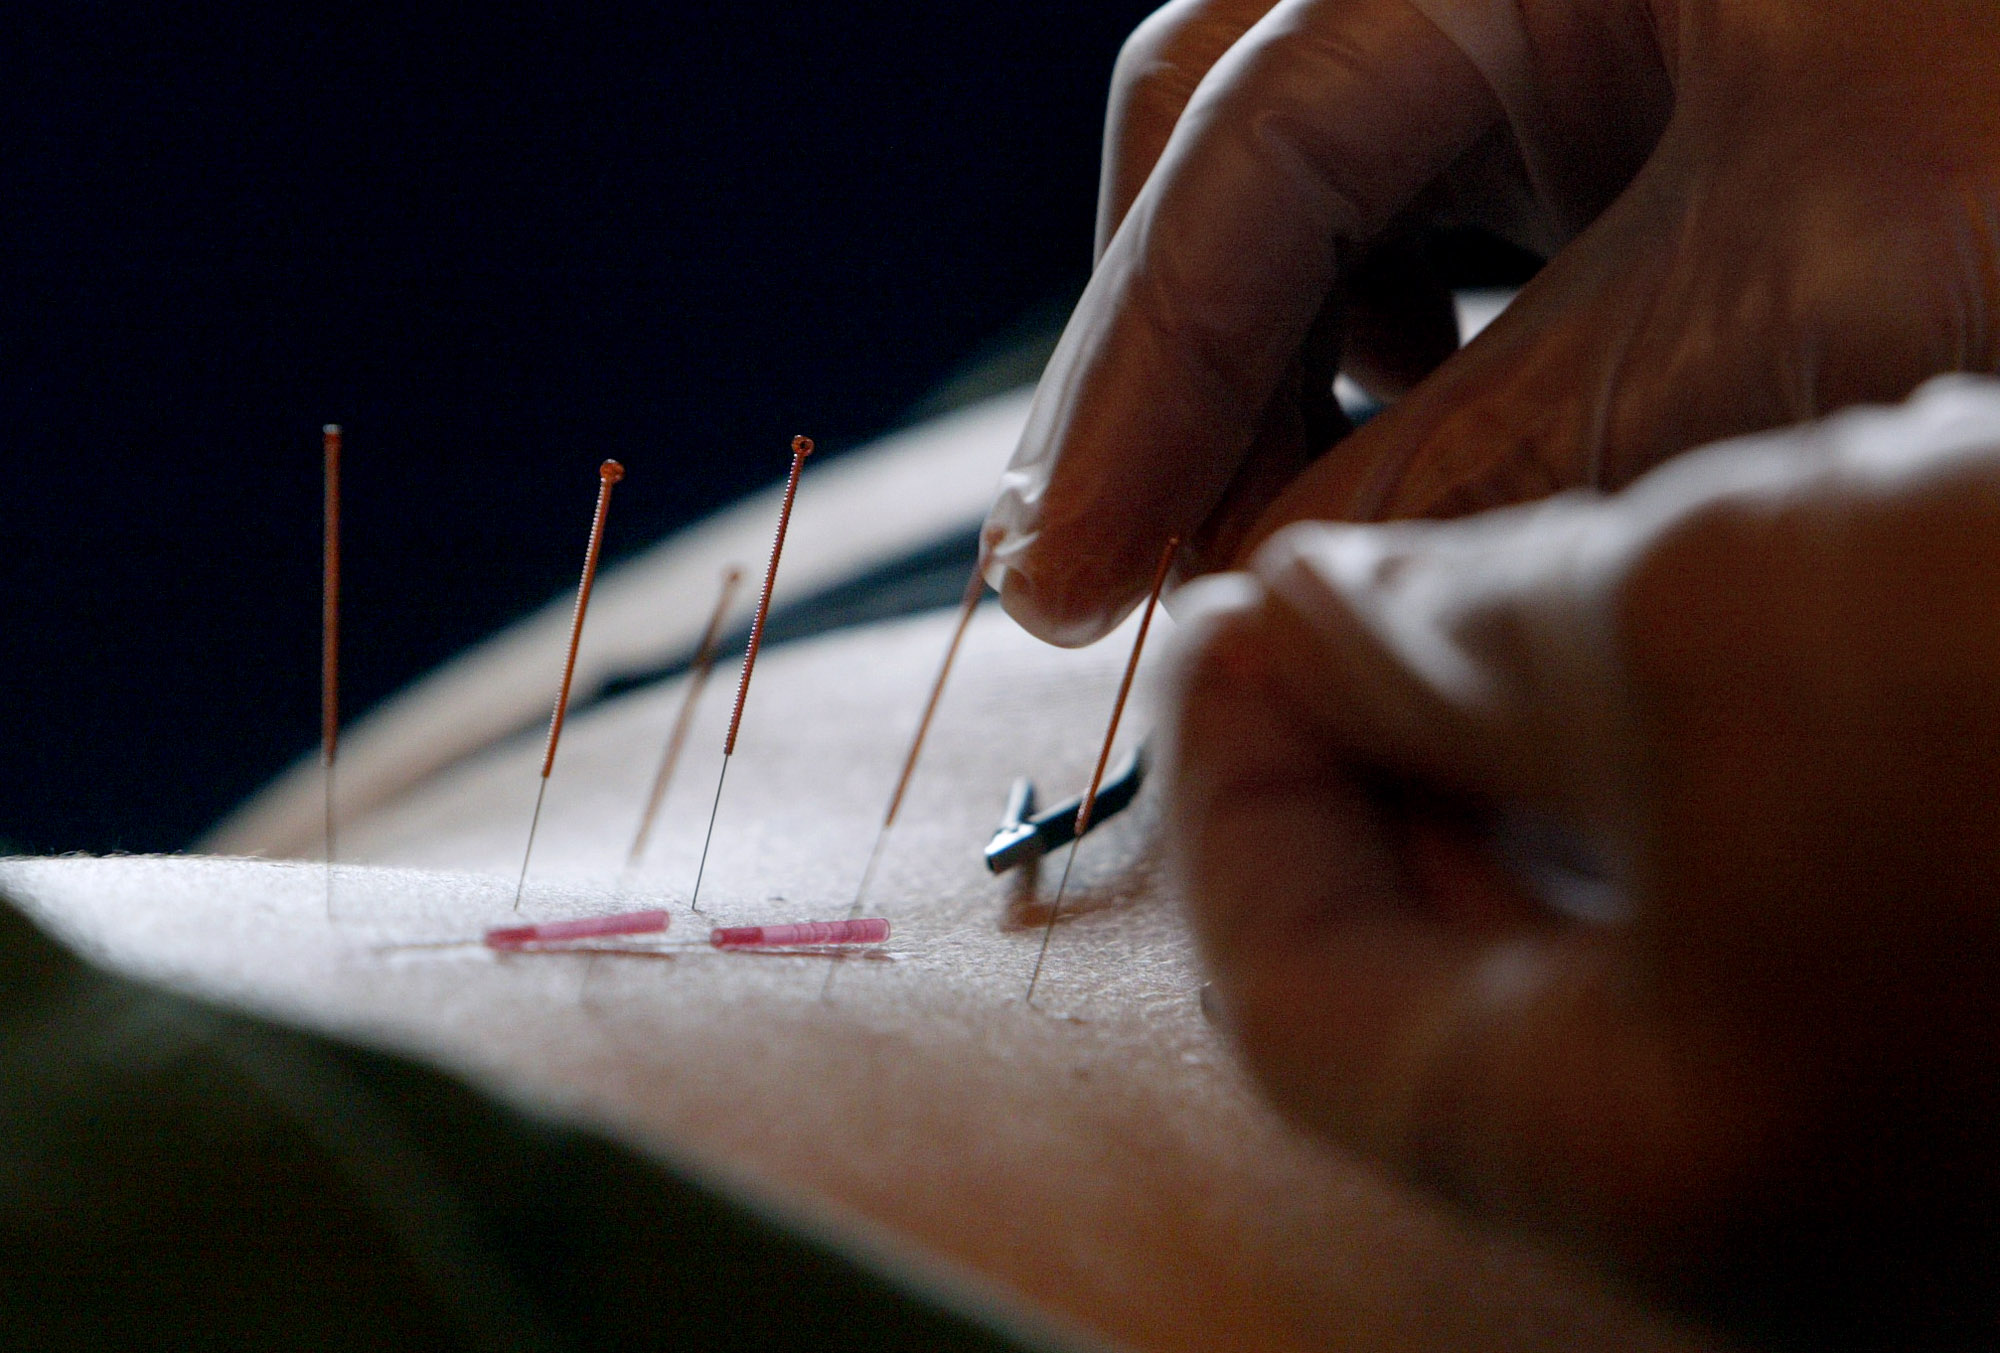 Medicare proposal would cover acupuncture to treat lower back pain for patients in studies